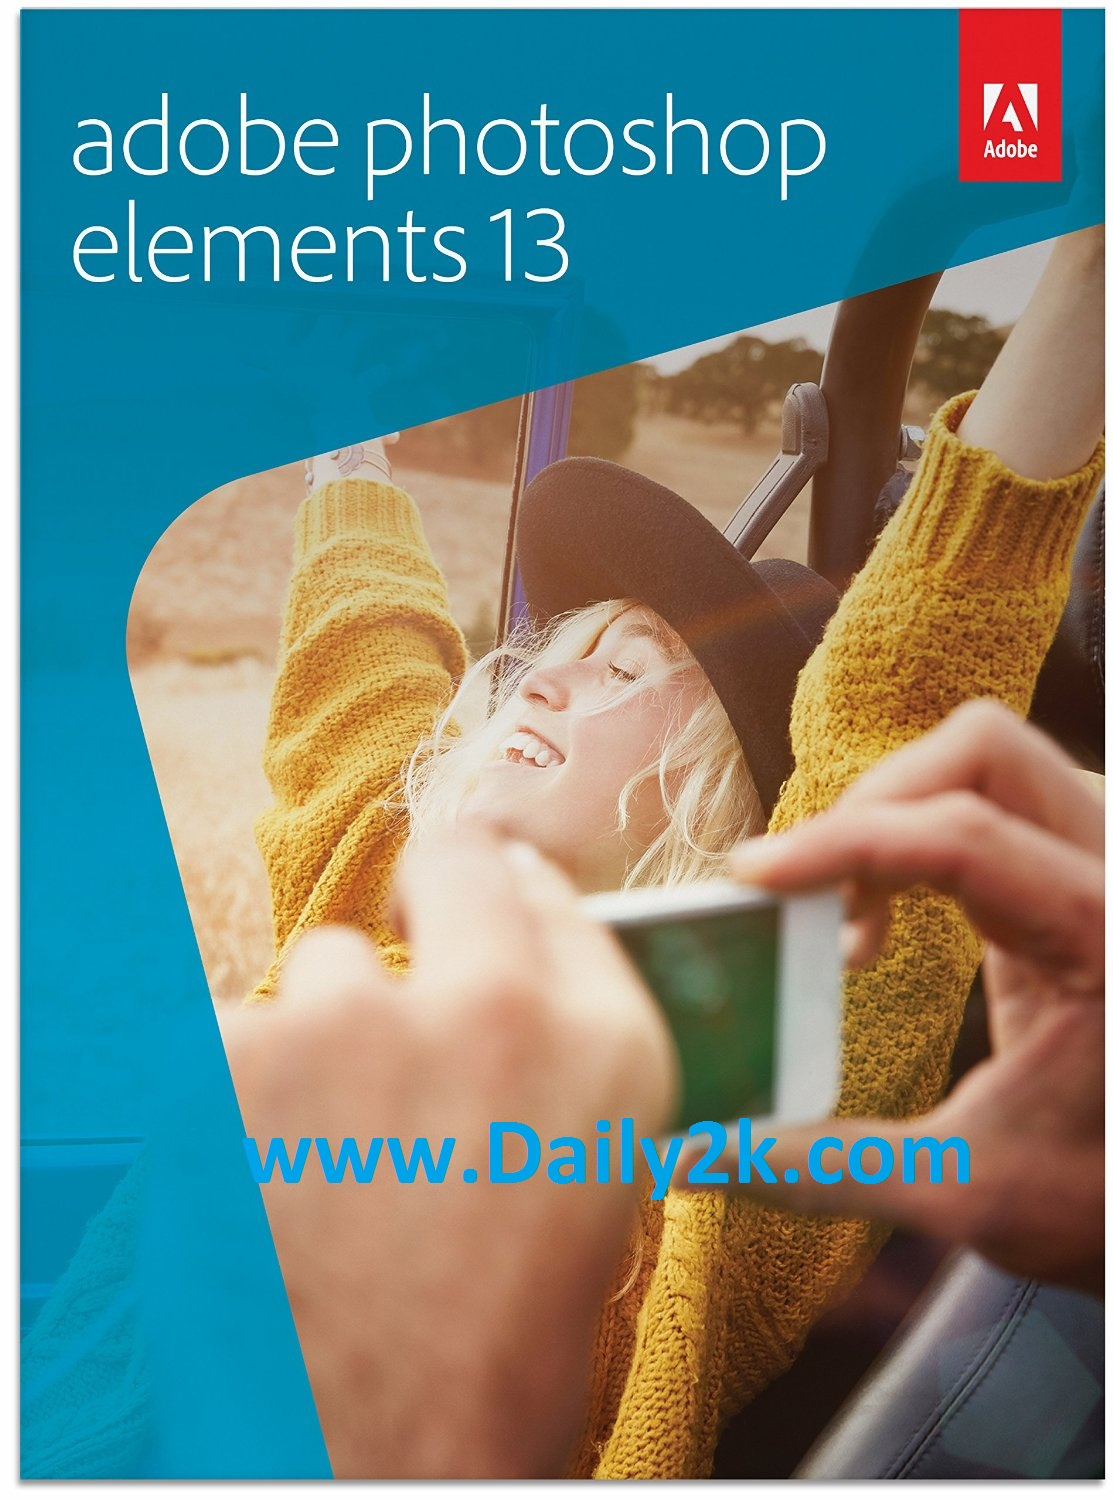 Adobe Photoshop Elements 13 Free Download Serial Number-Daily2k